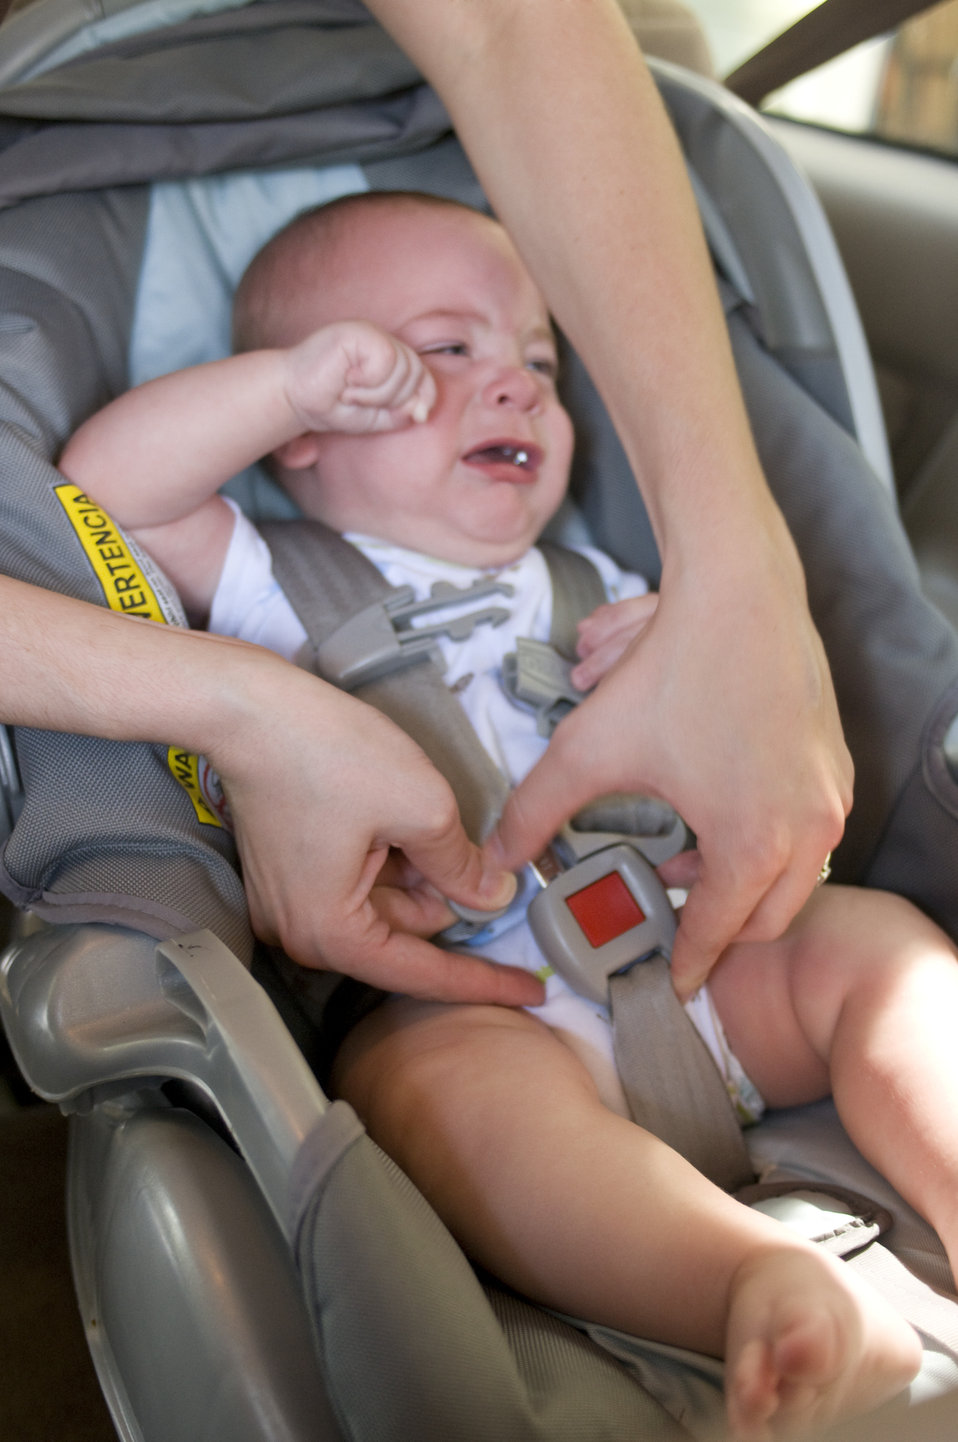 This image depicts a mother in the process of securing her infant child into a back seat-located child safety seat. At this point of the pro